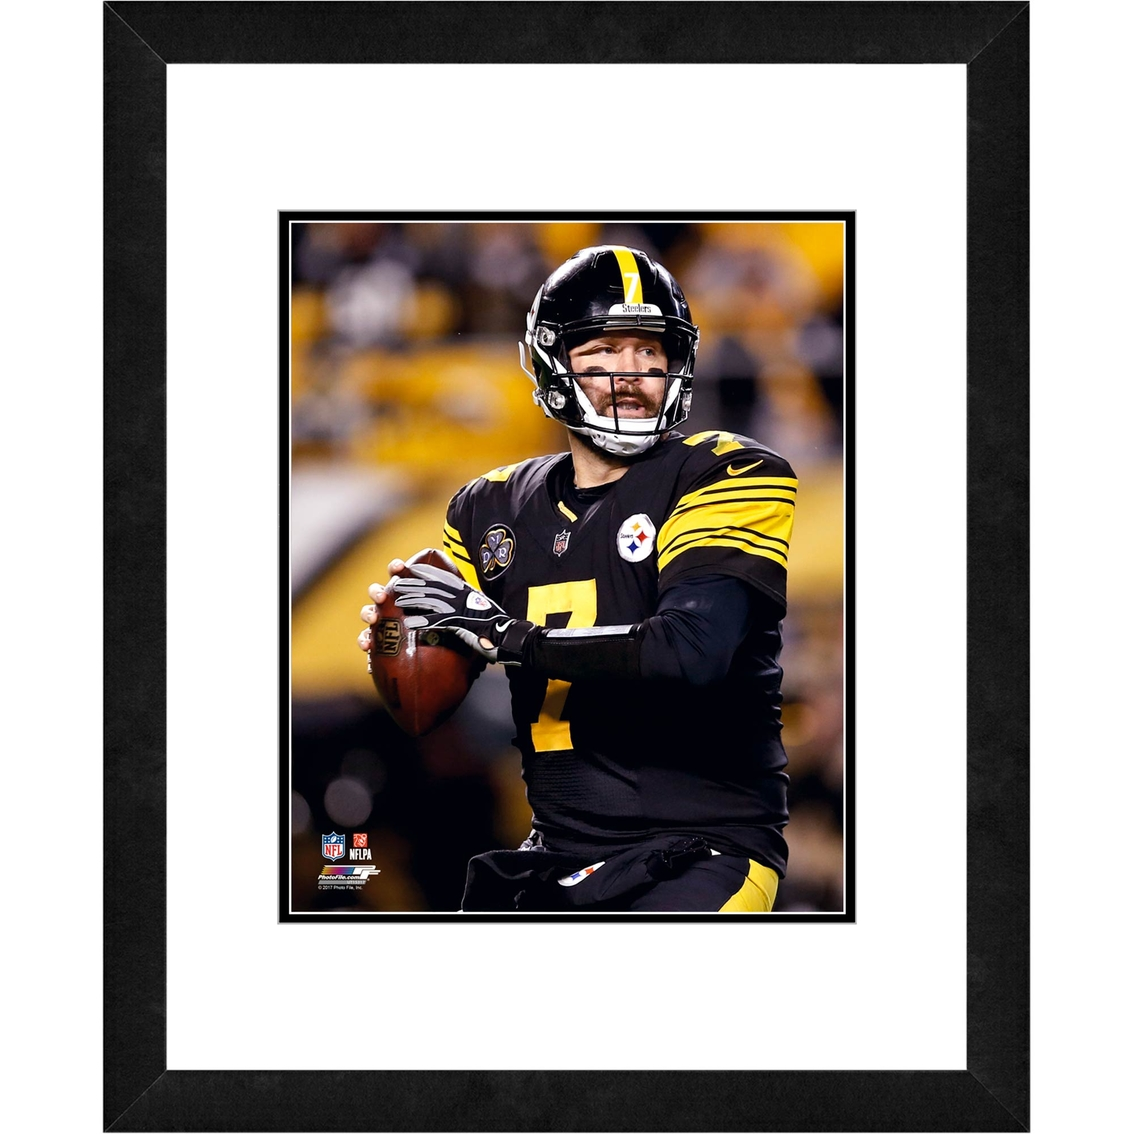 info for adf69 82b53 Nfl Pittsburgh Steelers Ben Roethlisberger Framed Photo ...